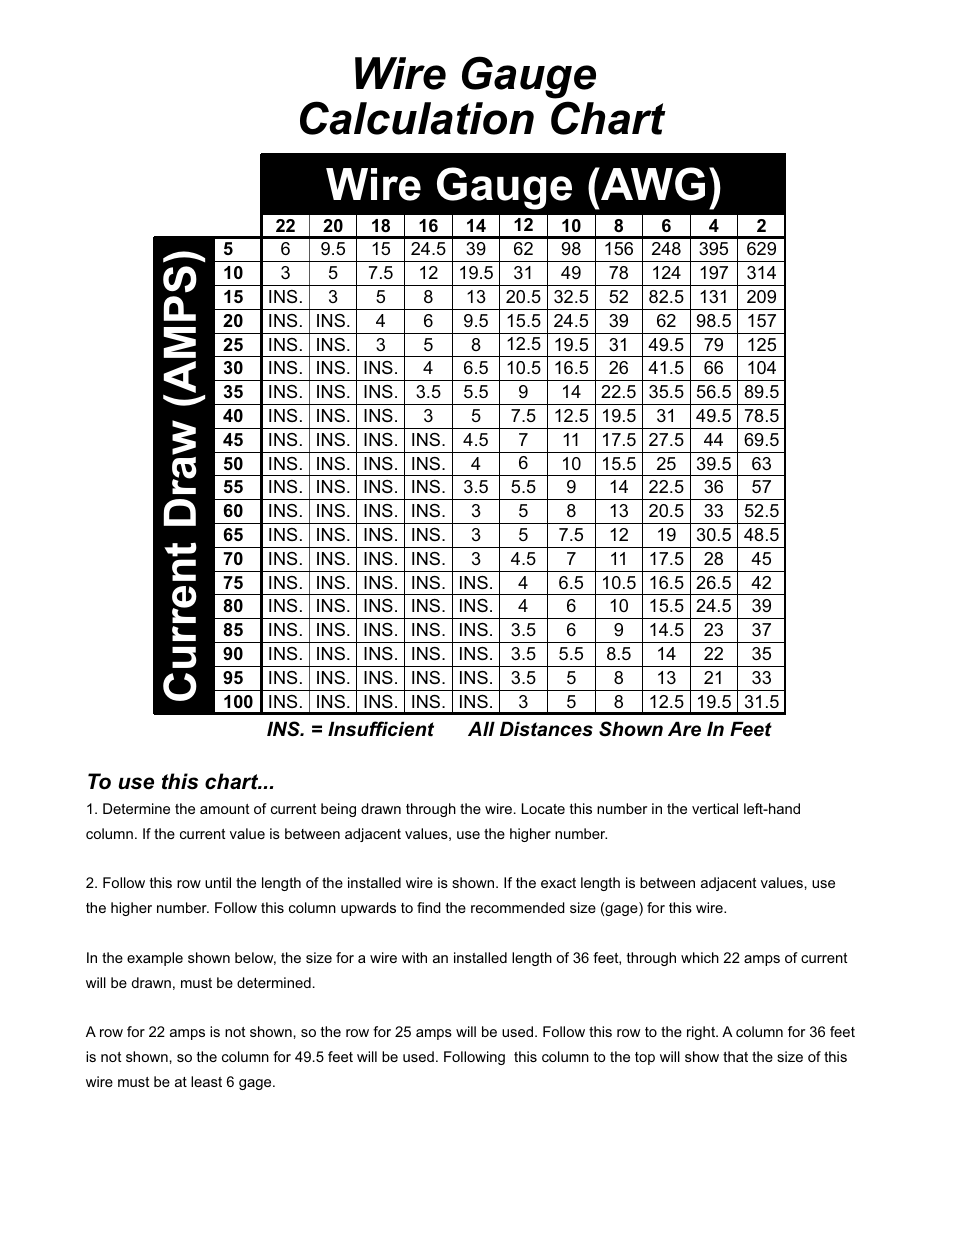 Current draw amps wire gauge calculation chart wire gauge awg current draw amps wire gauge calculation chart wire gauge awg greentooth Choice Image